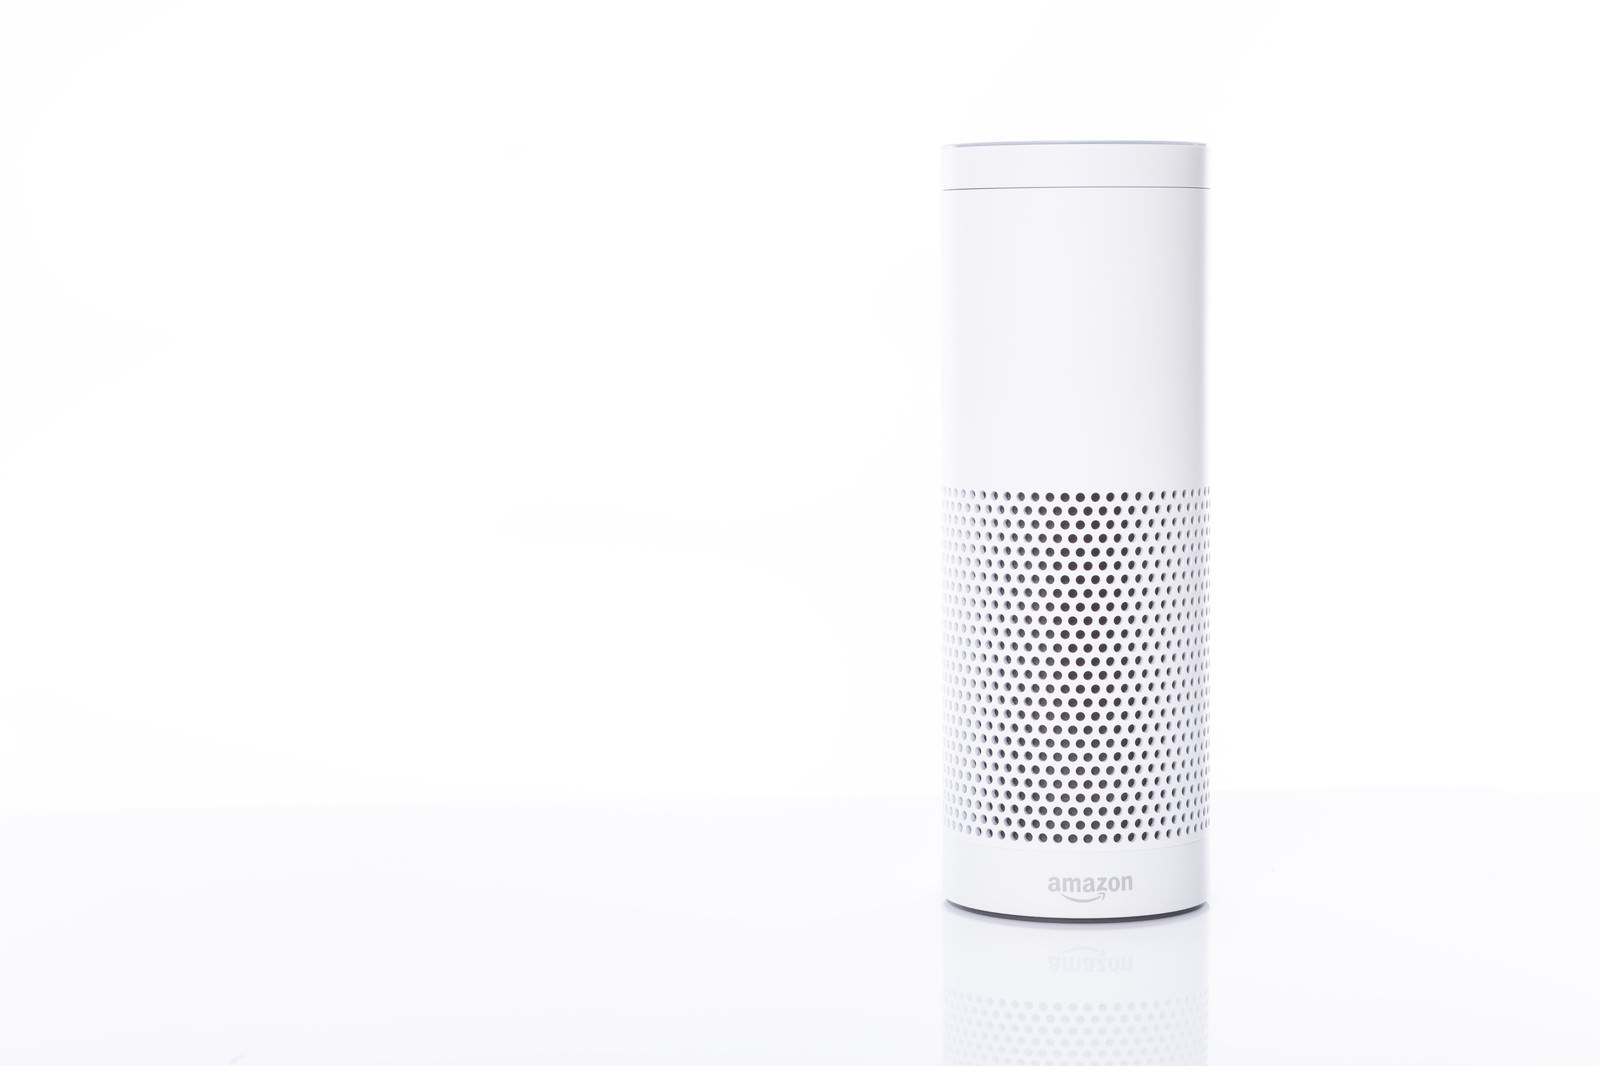 AmazonIMGL4448 TP V amazon echo plus